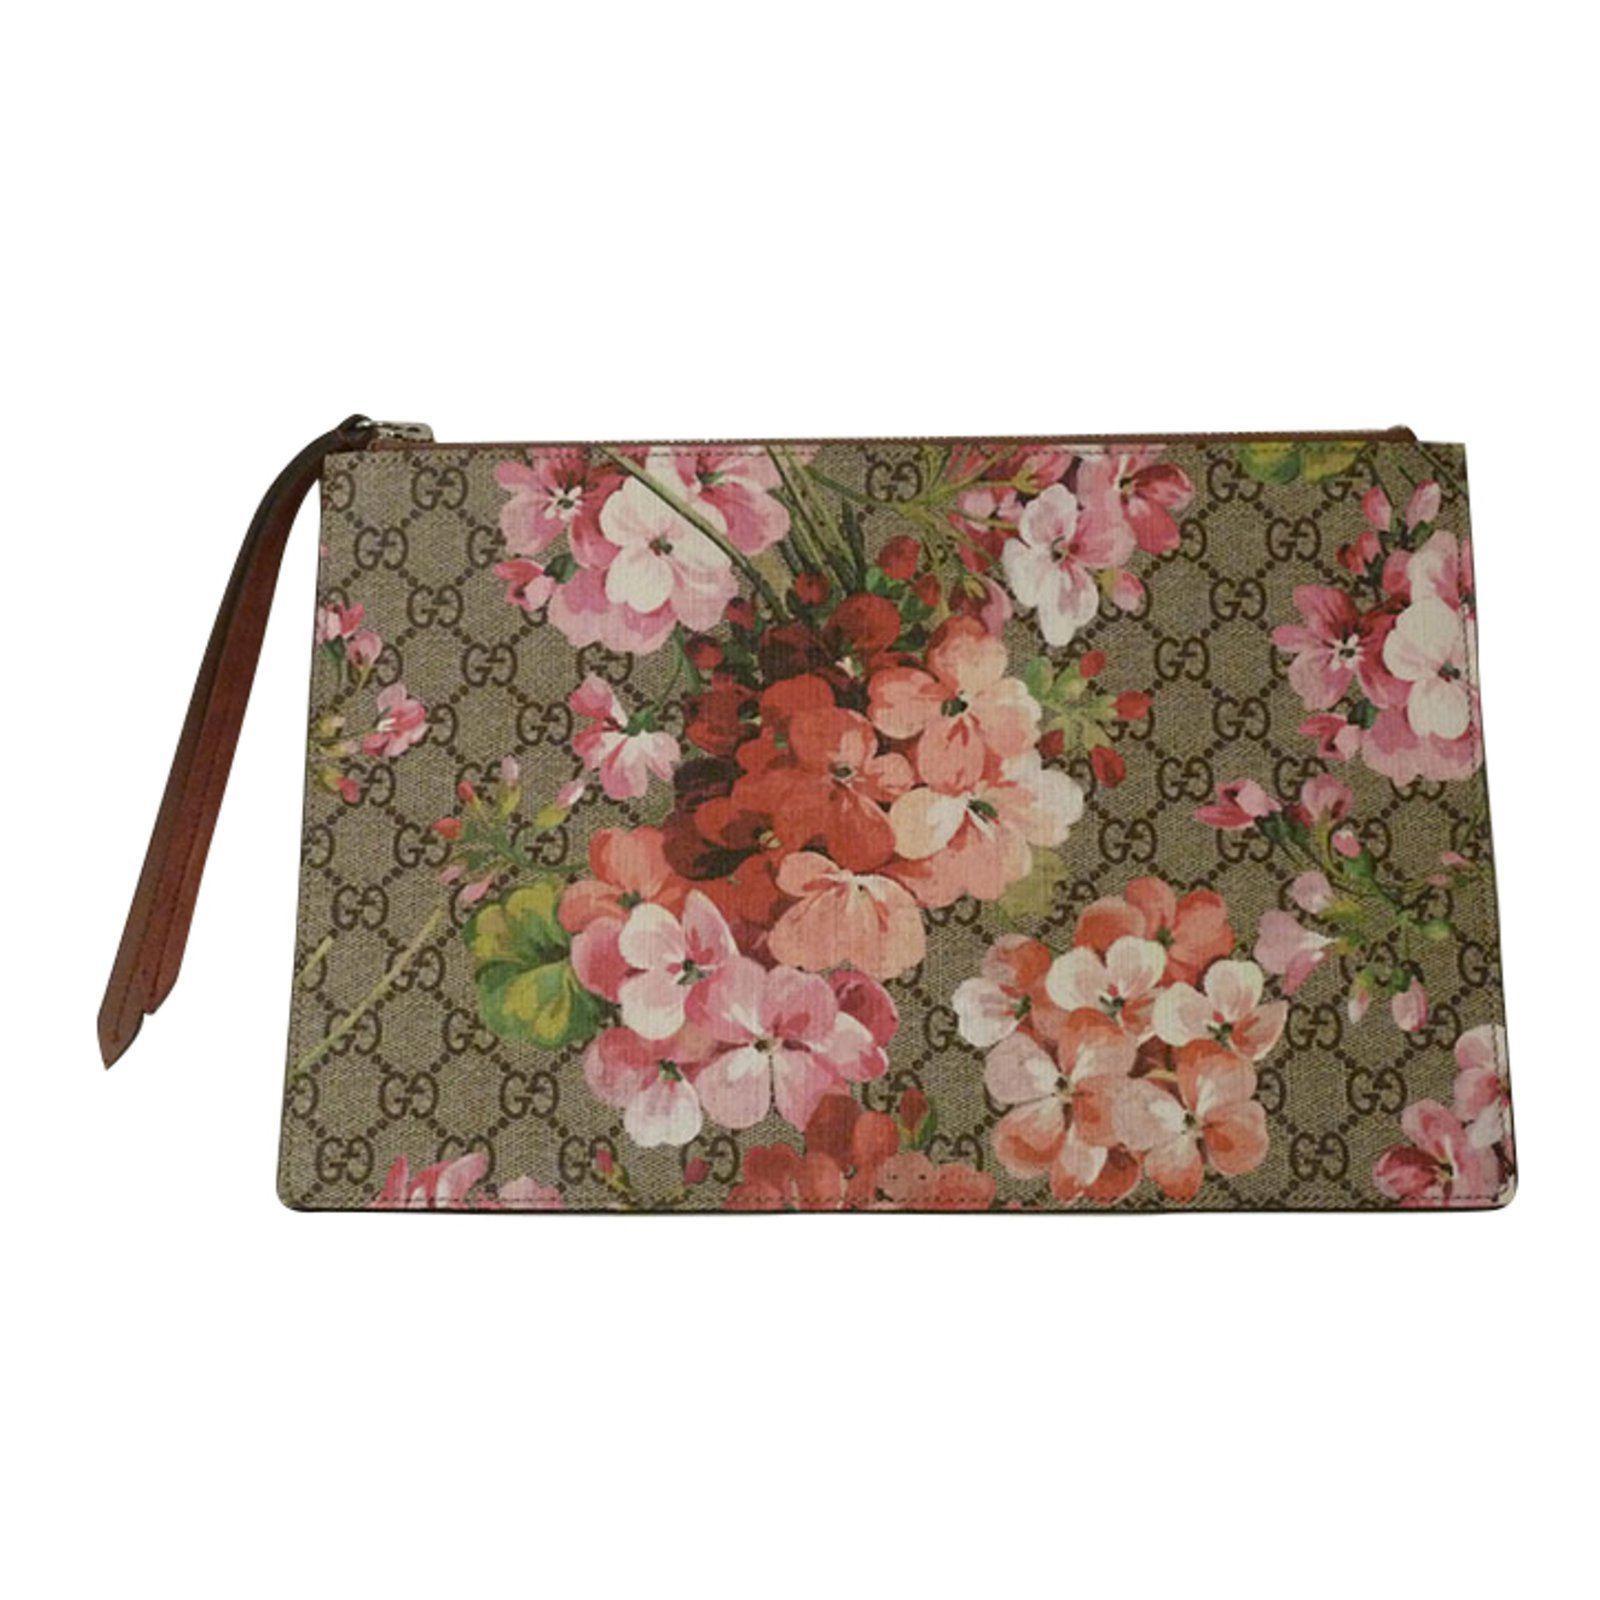 gucci clutch. gucci gg supreme blooms zip pouch clutch bags other beige ref.37555 l